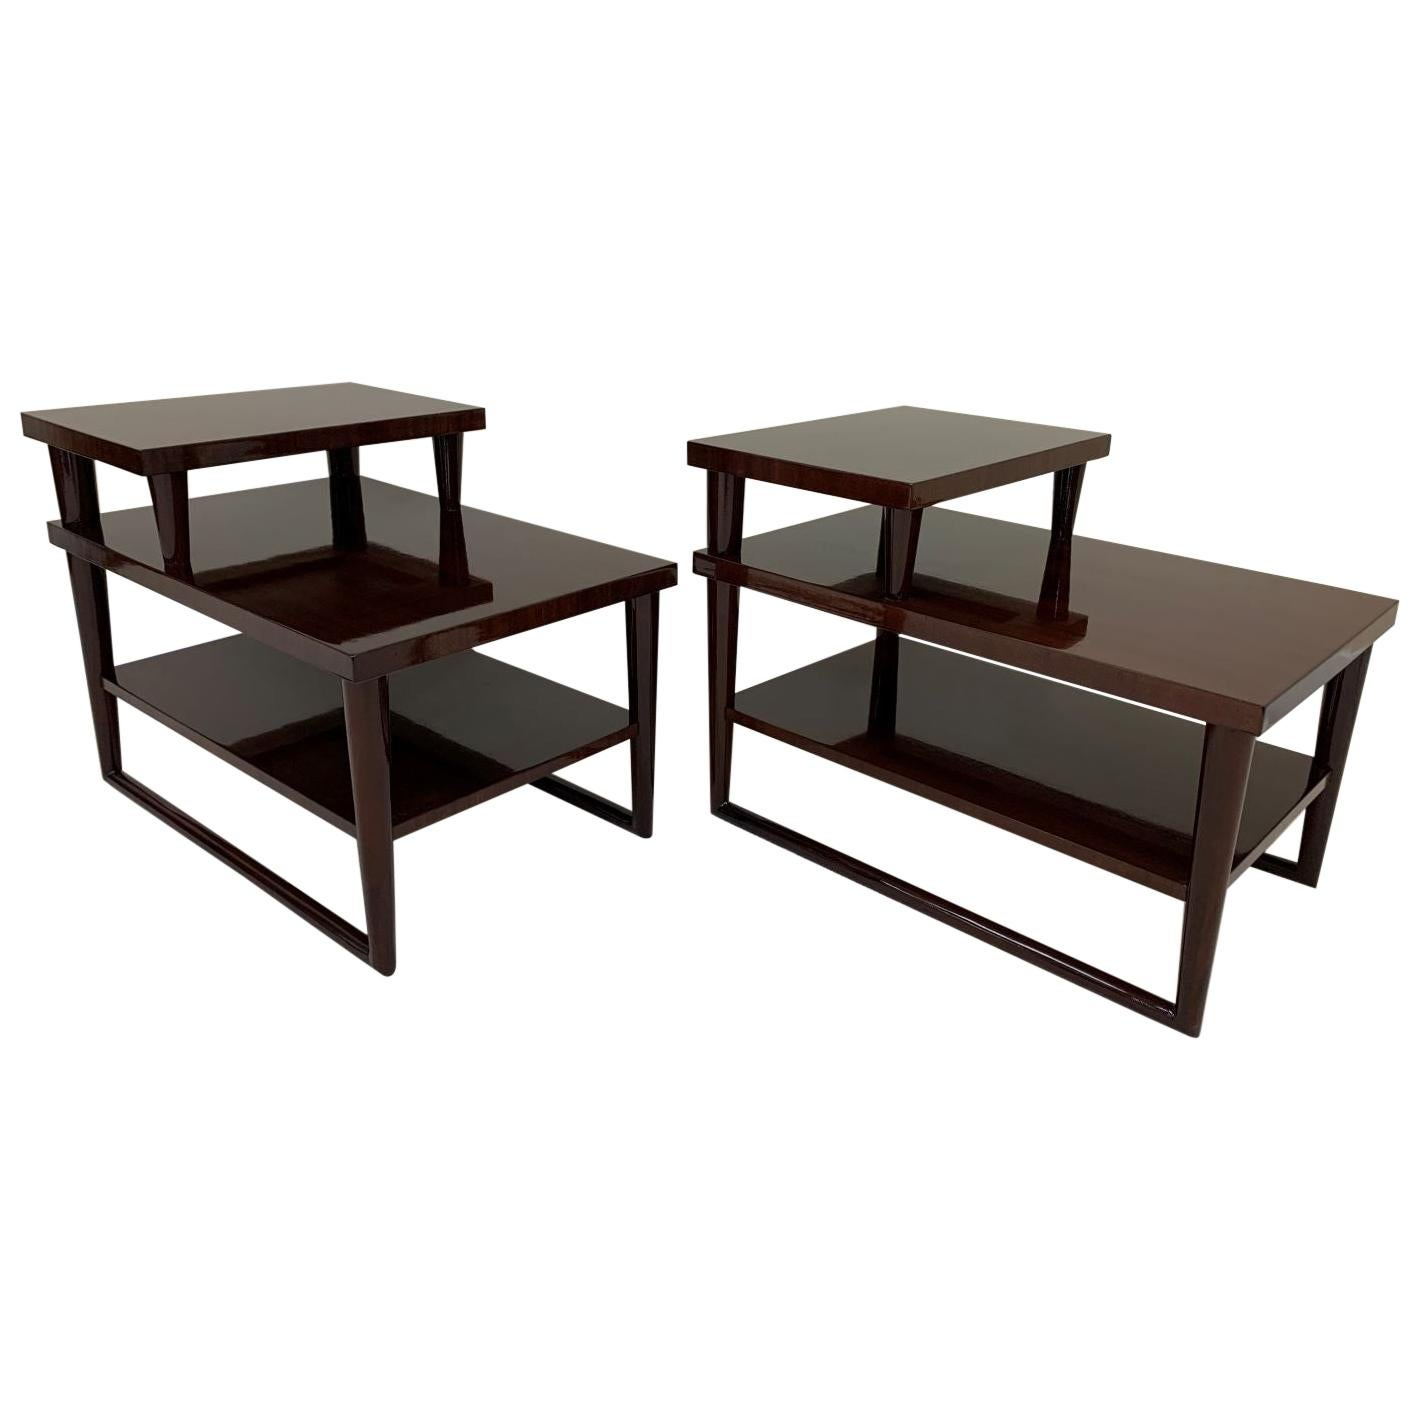 Pair of Mid Century Three Tier Side Tables Attributed to T.H. Robsjohn-Gibbings